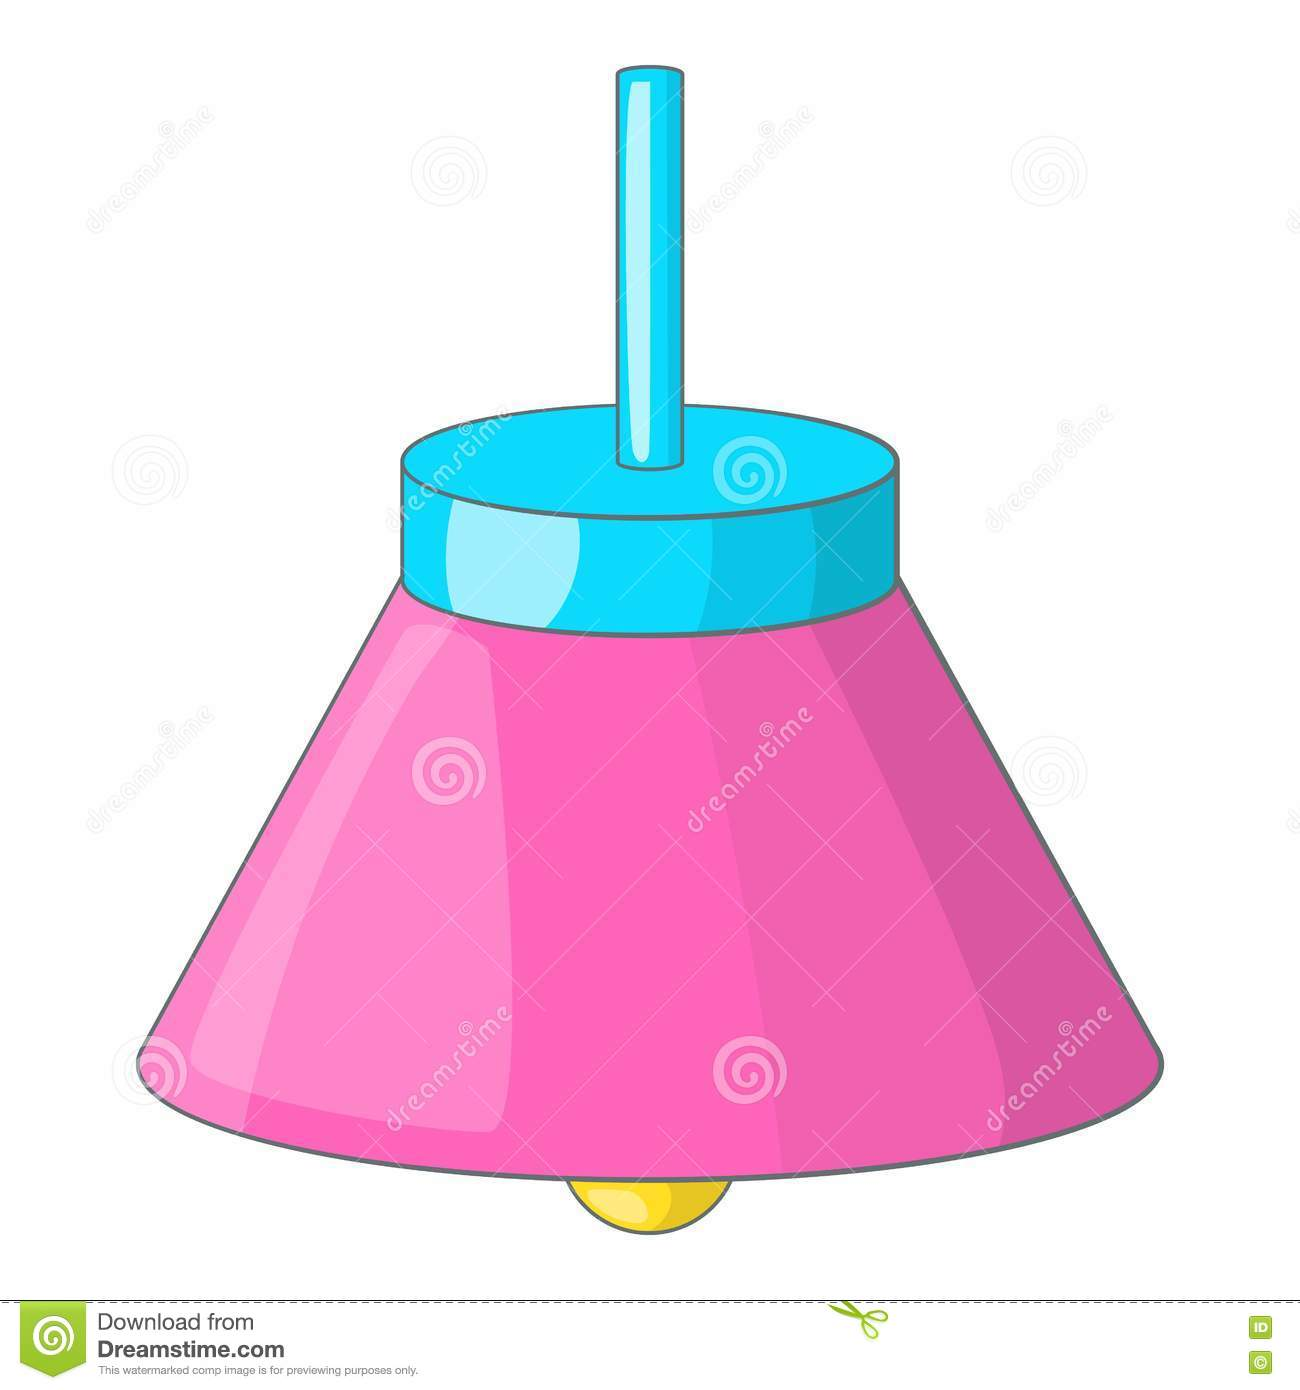 Ceiling Design Vector Pink Ceiling Lamp Icon Cartoon Style Stock Vector Image